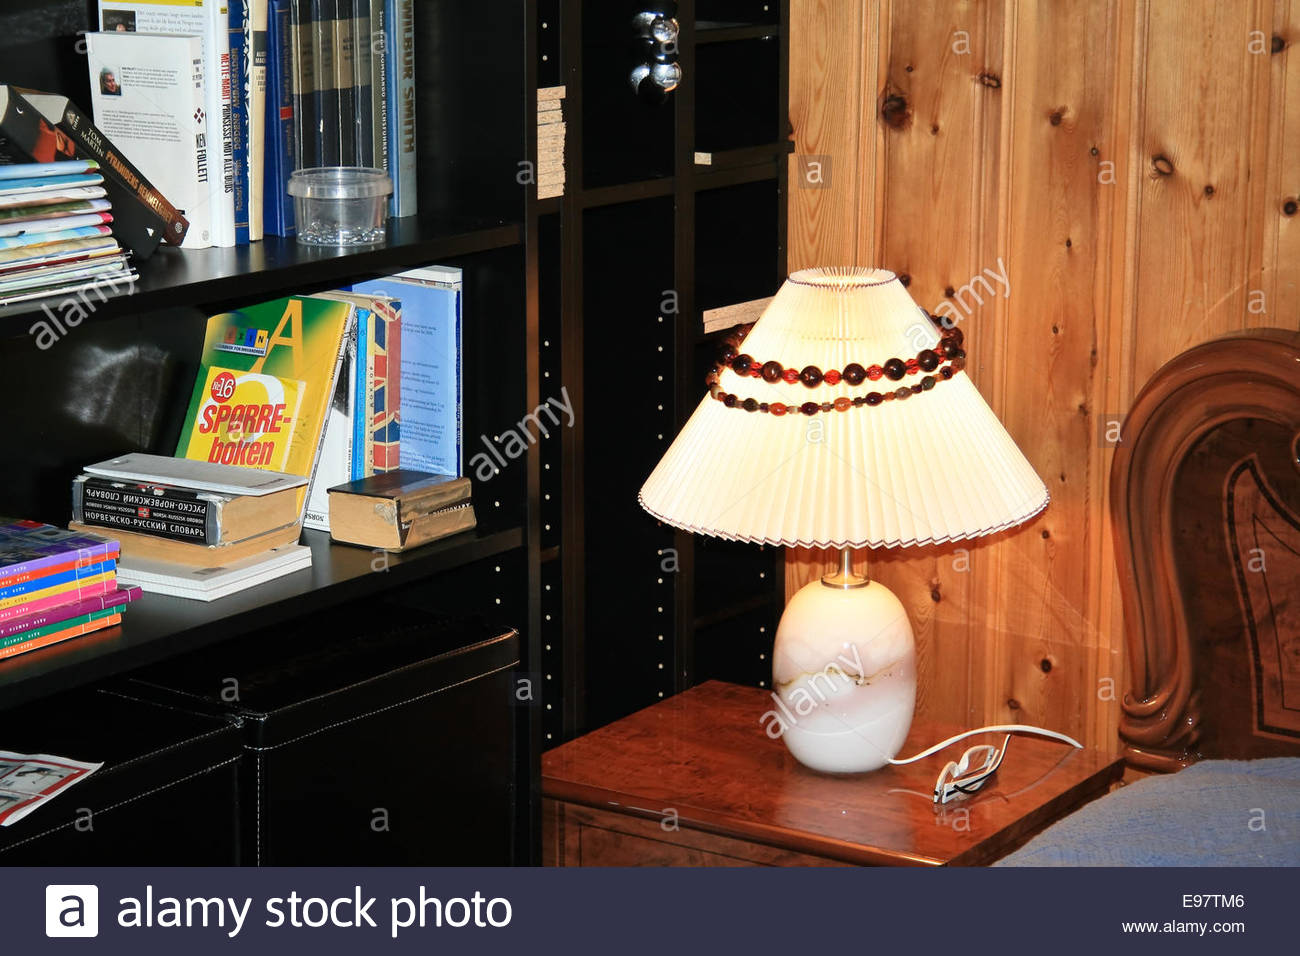 interior room. a lighted lamp on the bedside. shelving of books - Stock Image